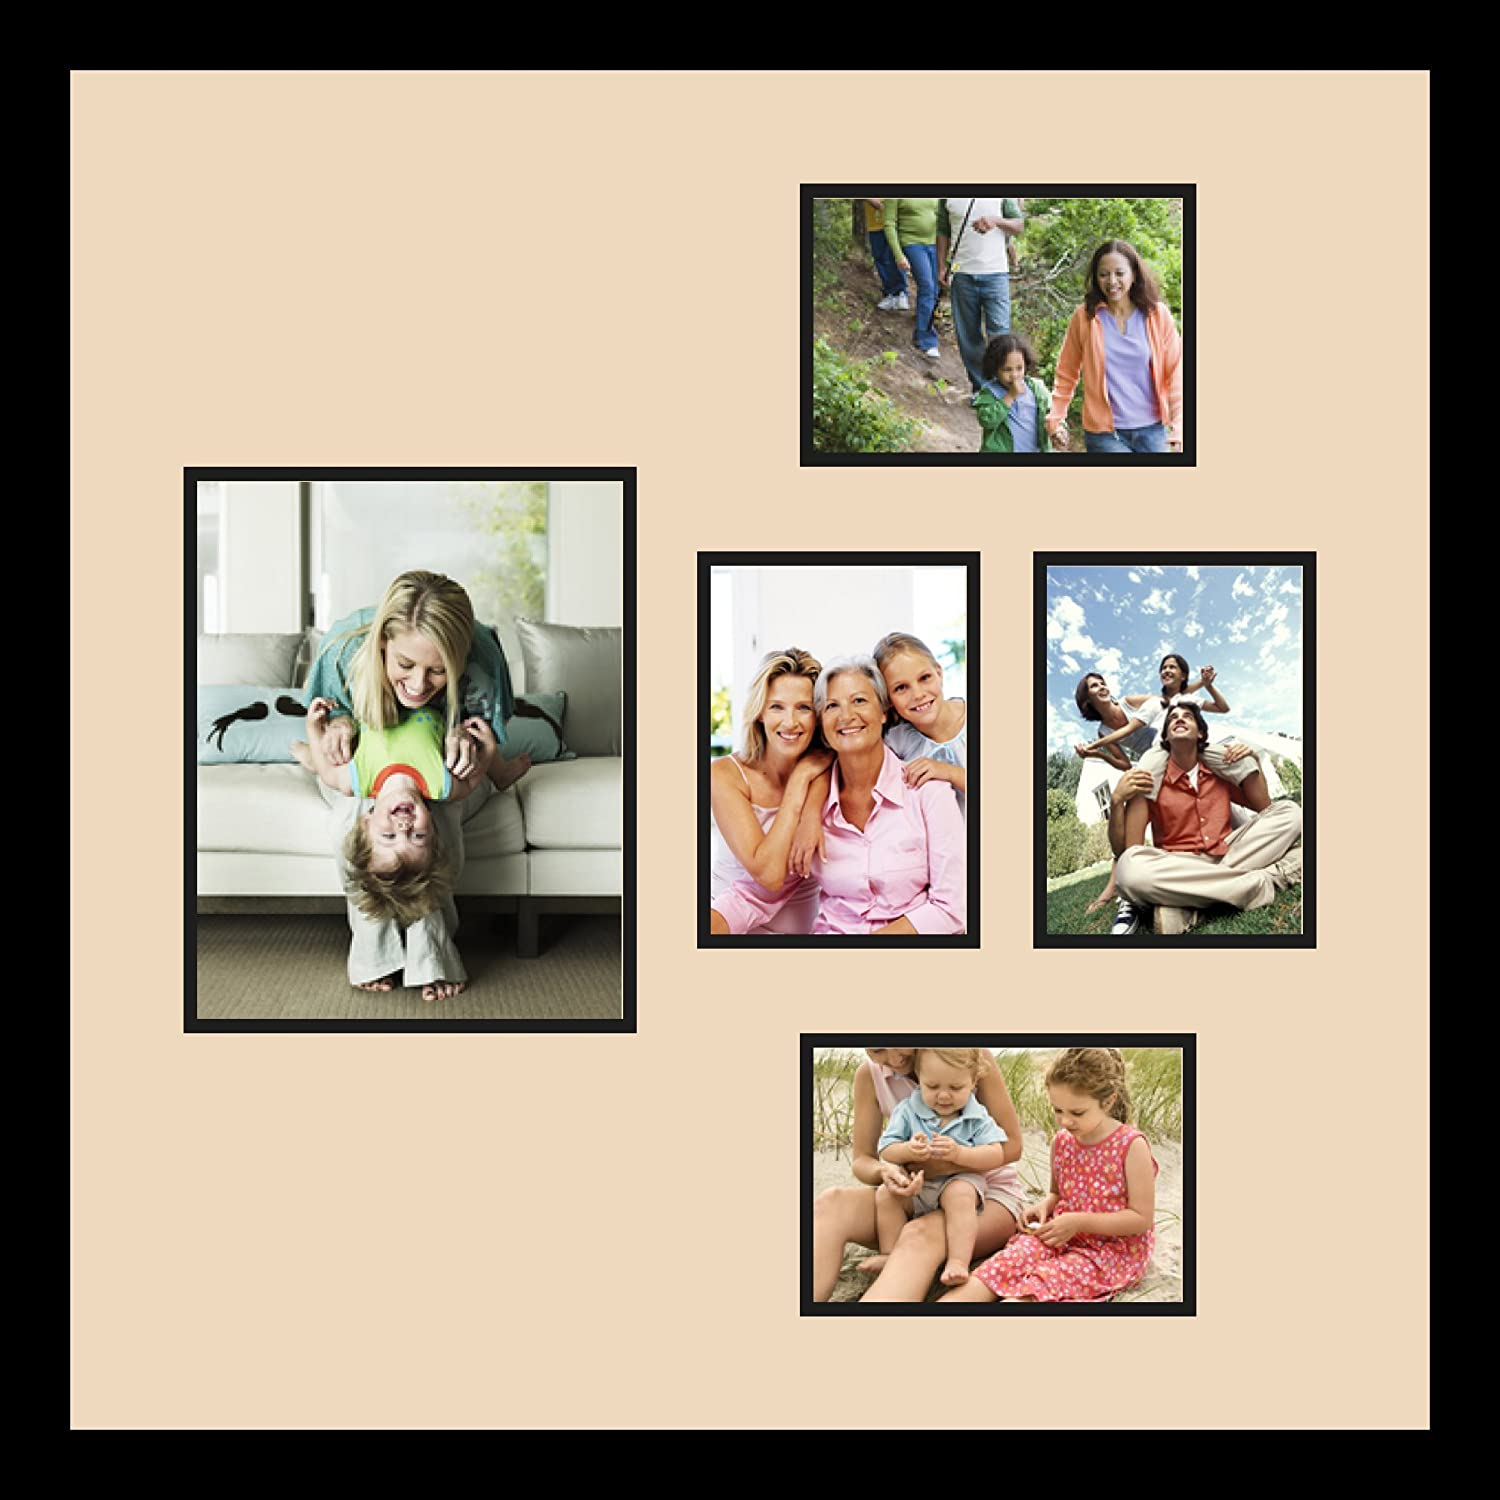 Art to Frames Double-Multimat-332-783//89-FRBW26079 Collage Photo Frame Double Mat with 1-8x10 and 4-5x7 Openings and Satin Black Frame